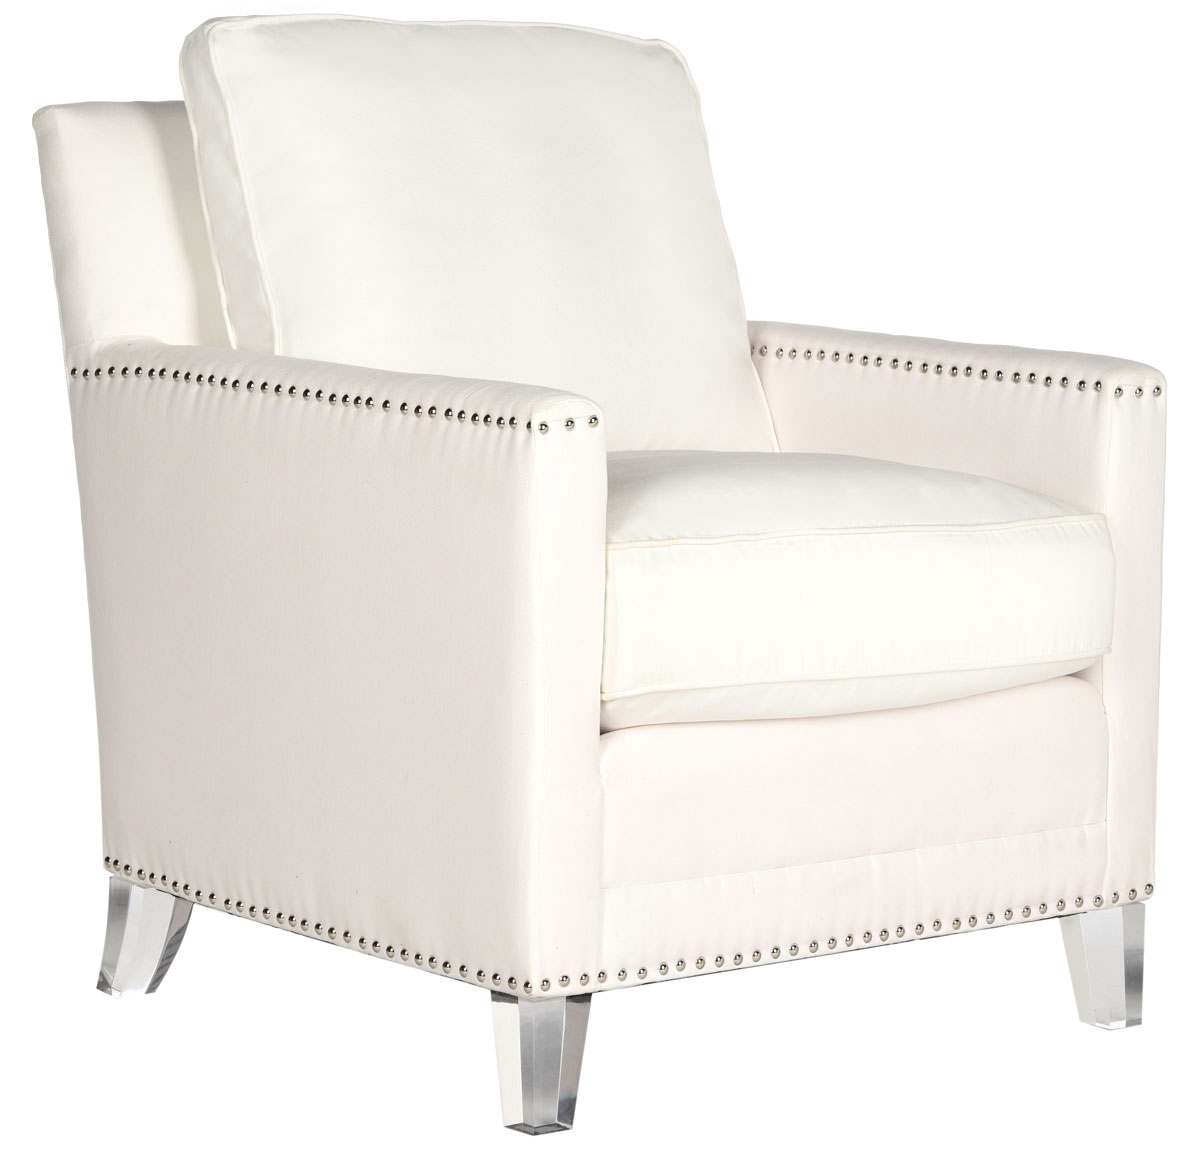 Hollywood Glam Tufted Acrylic White Club Chair W Silver Nail Heads Mcr4213a Accent Chairs